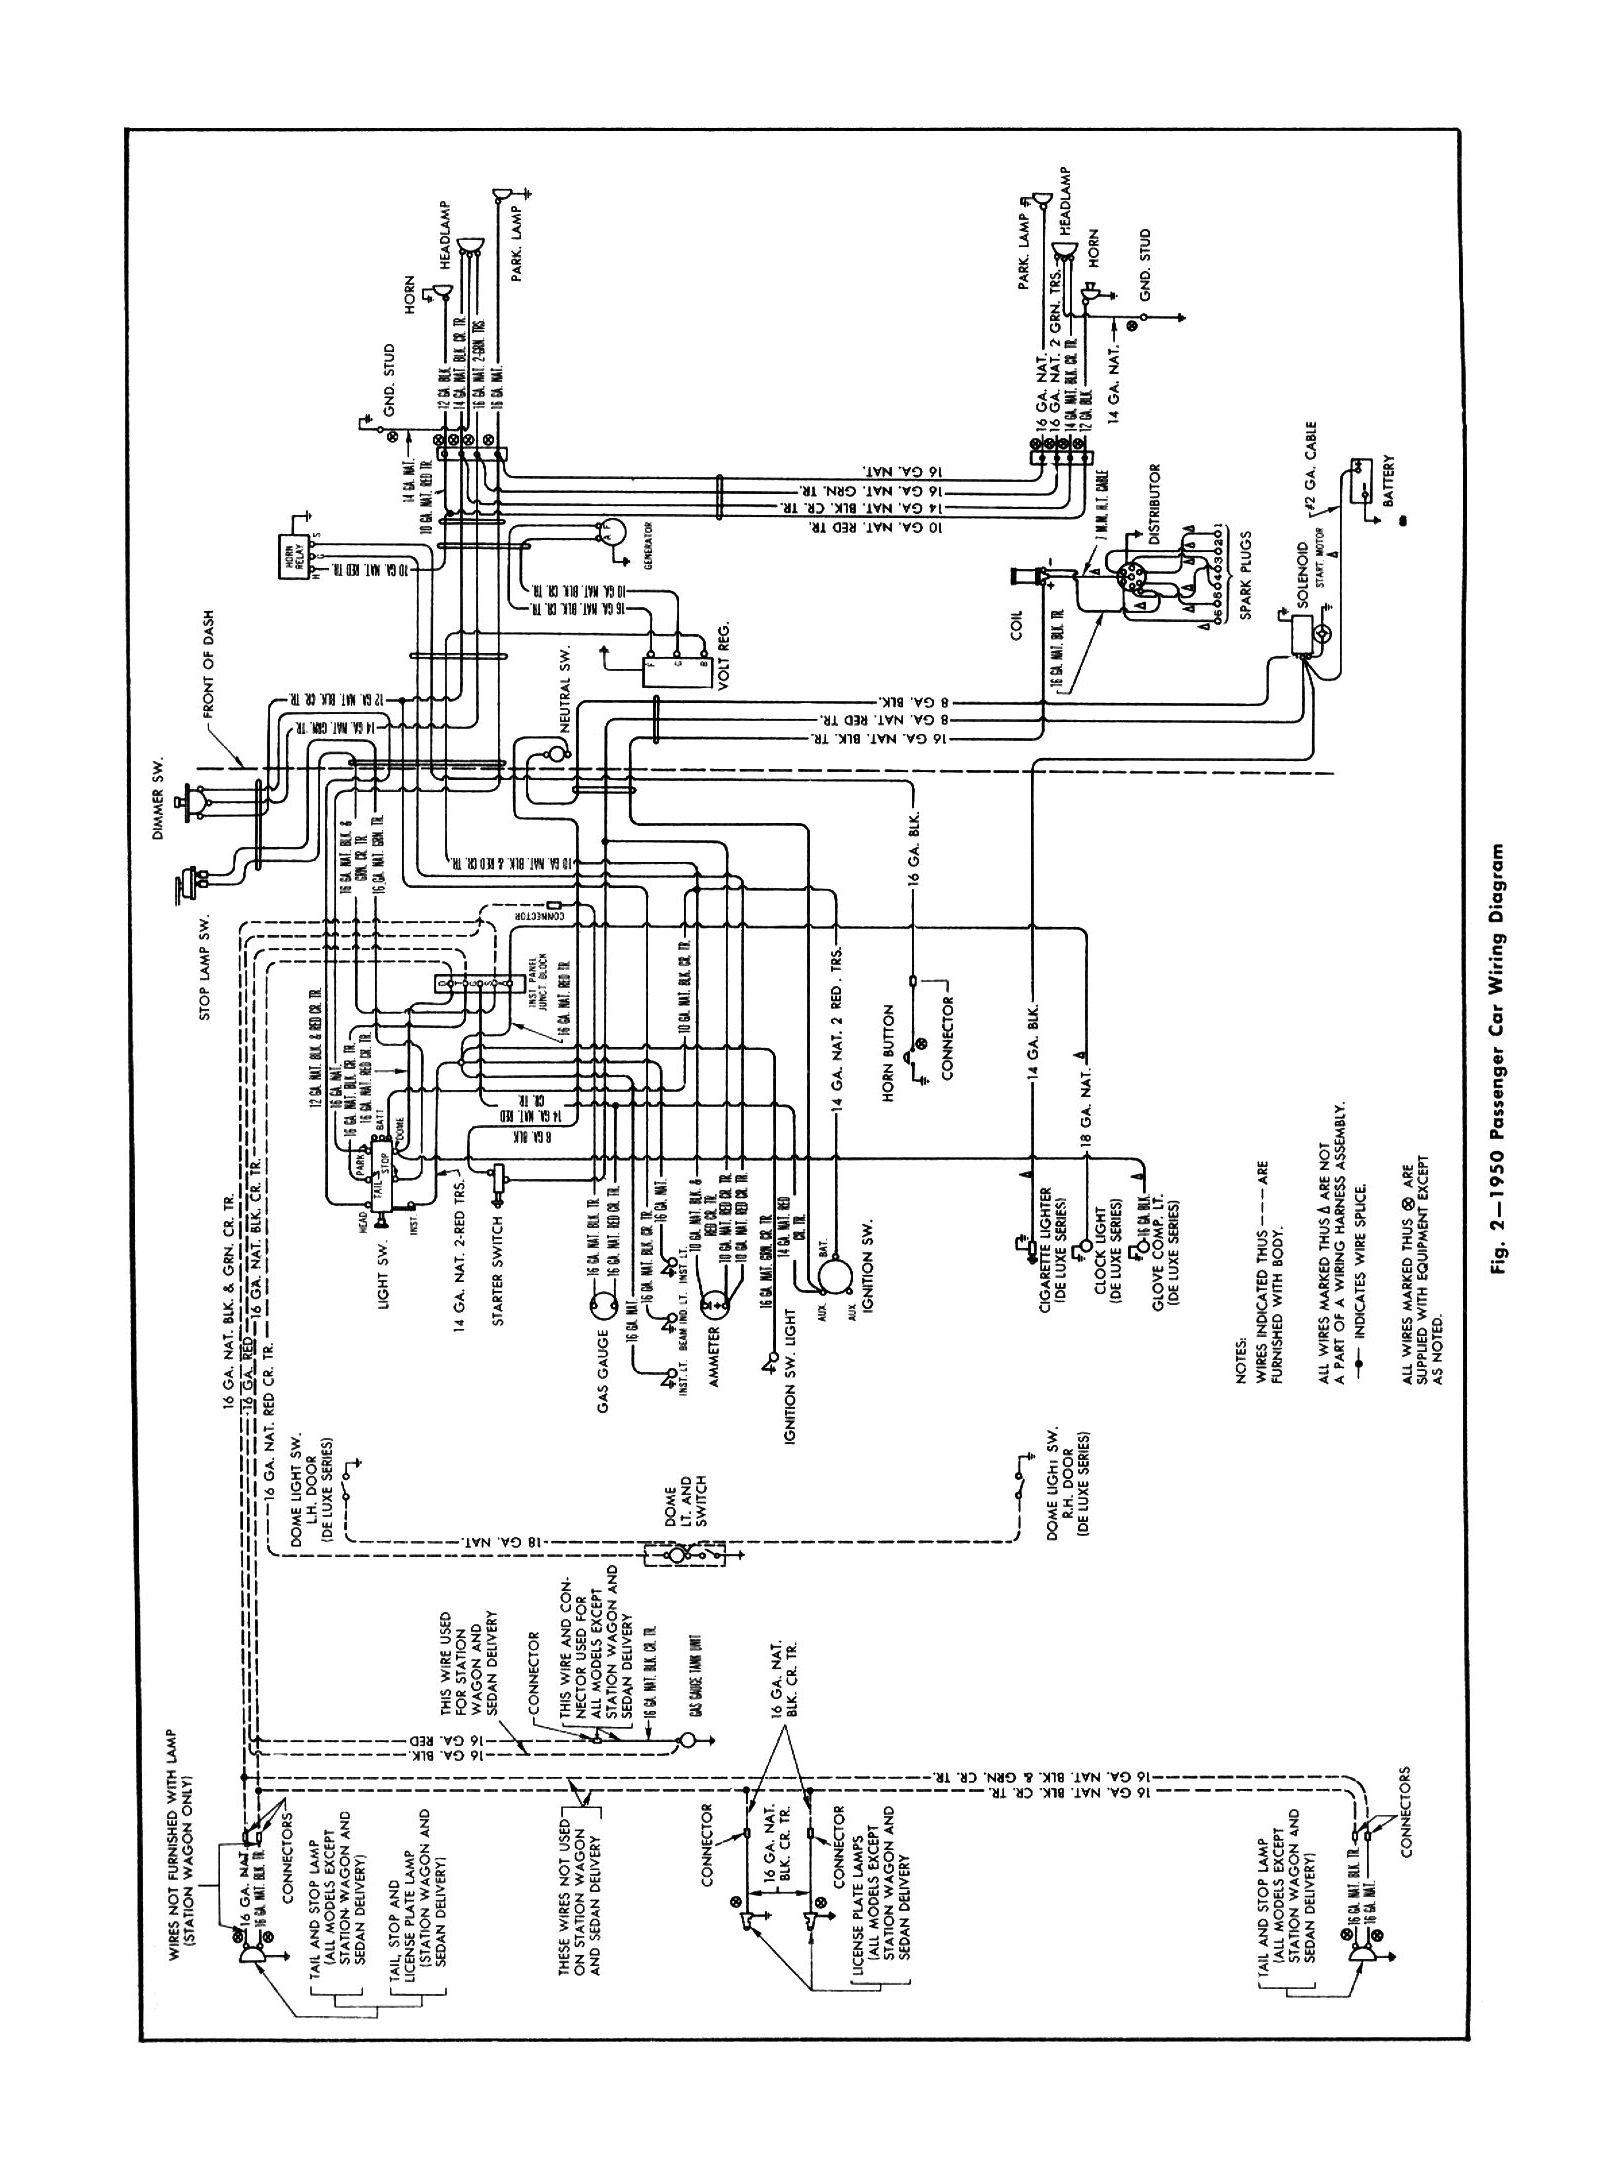 1950 chrysler wiring diagram wiring diagram read Ford Wiring Schematics